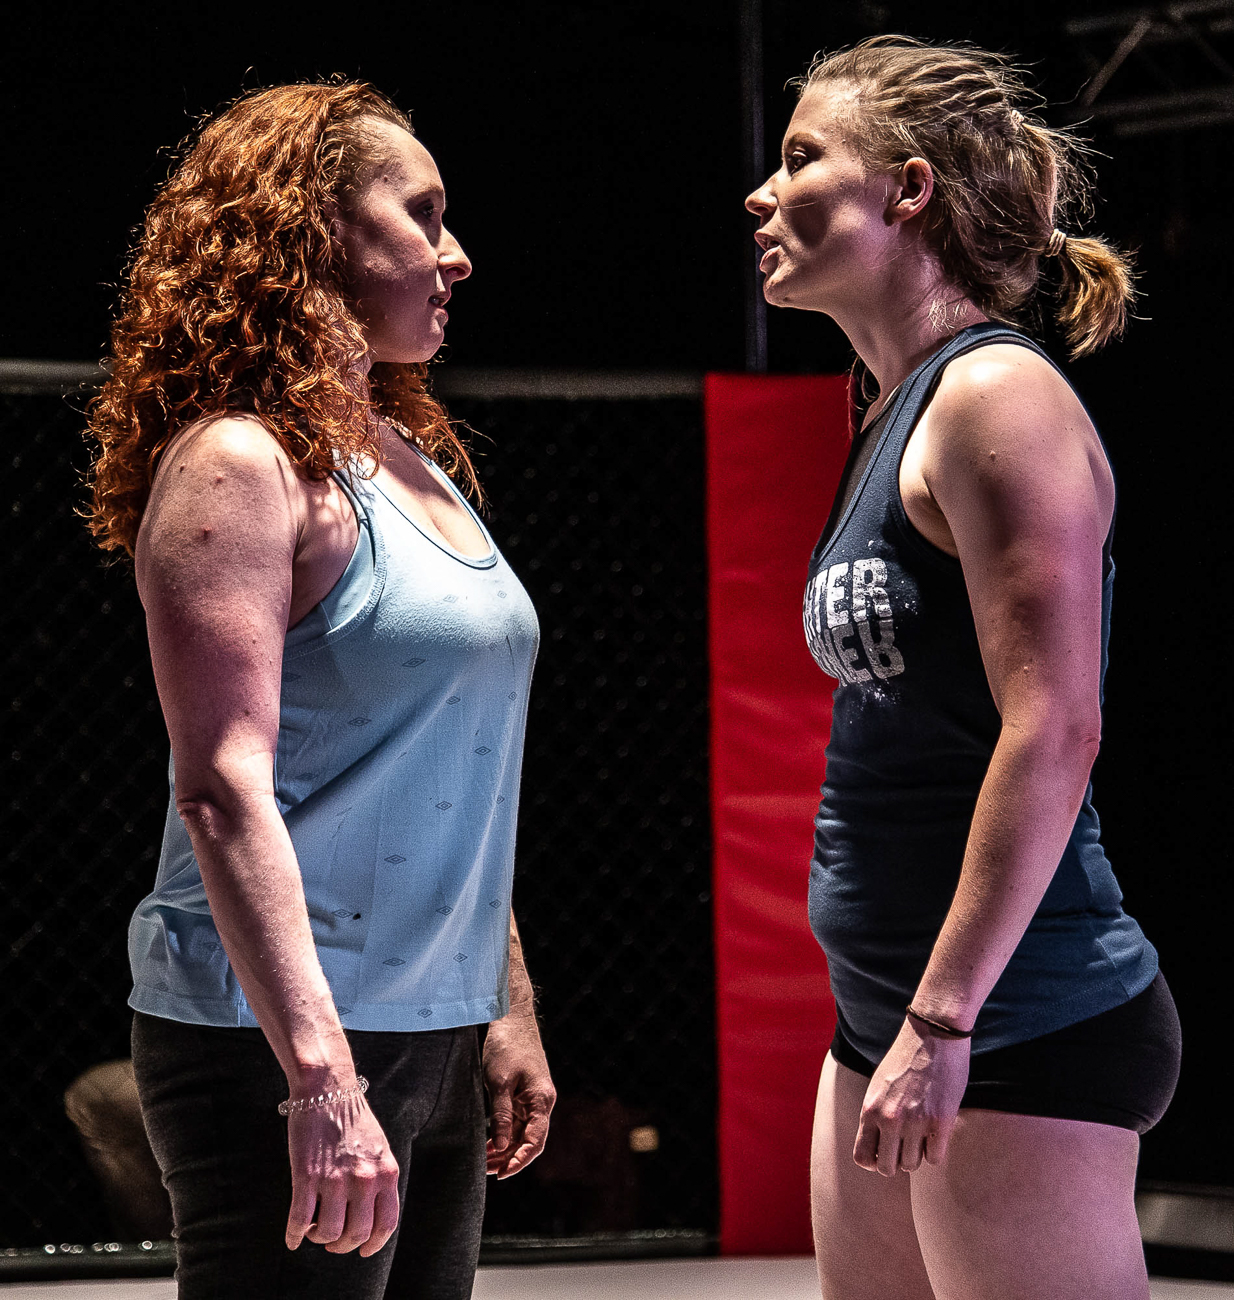 Tess Talbot and Mindy Heithaus / Girl in the Red Corner by Stephen Spotswood plays every Wednesday through Sunday from July 26 to August 17 at Know Theatre in Over-the-Rhine. ADDRESS: 1120 Jackson Street (45202) / Image: Daniel Winters Photography // Published: 7.31.19